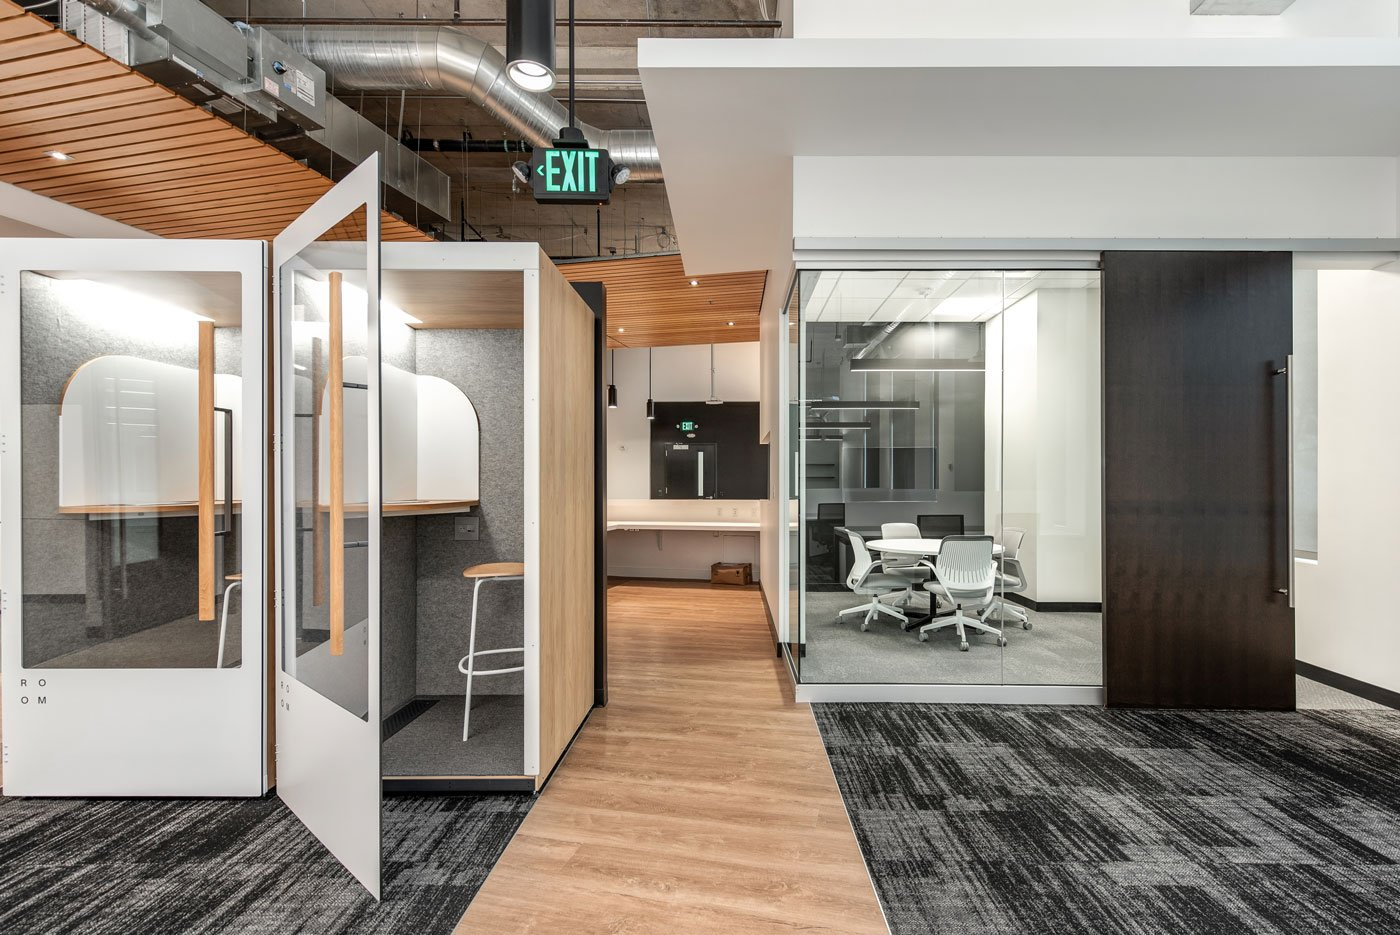 Office space interior showing rooms separated by glass and wood